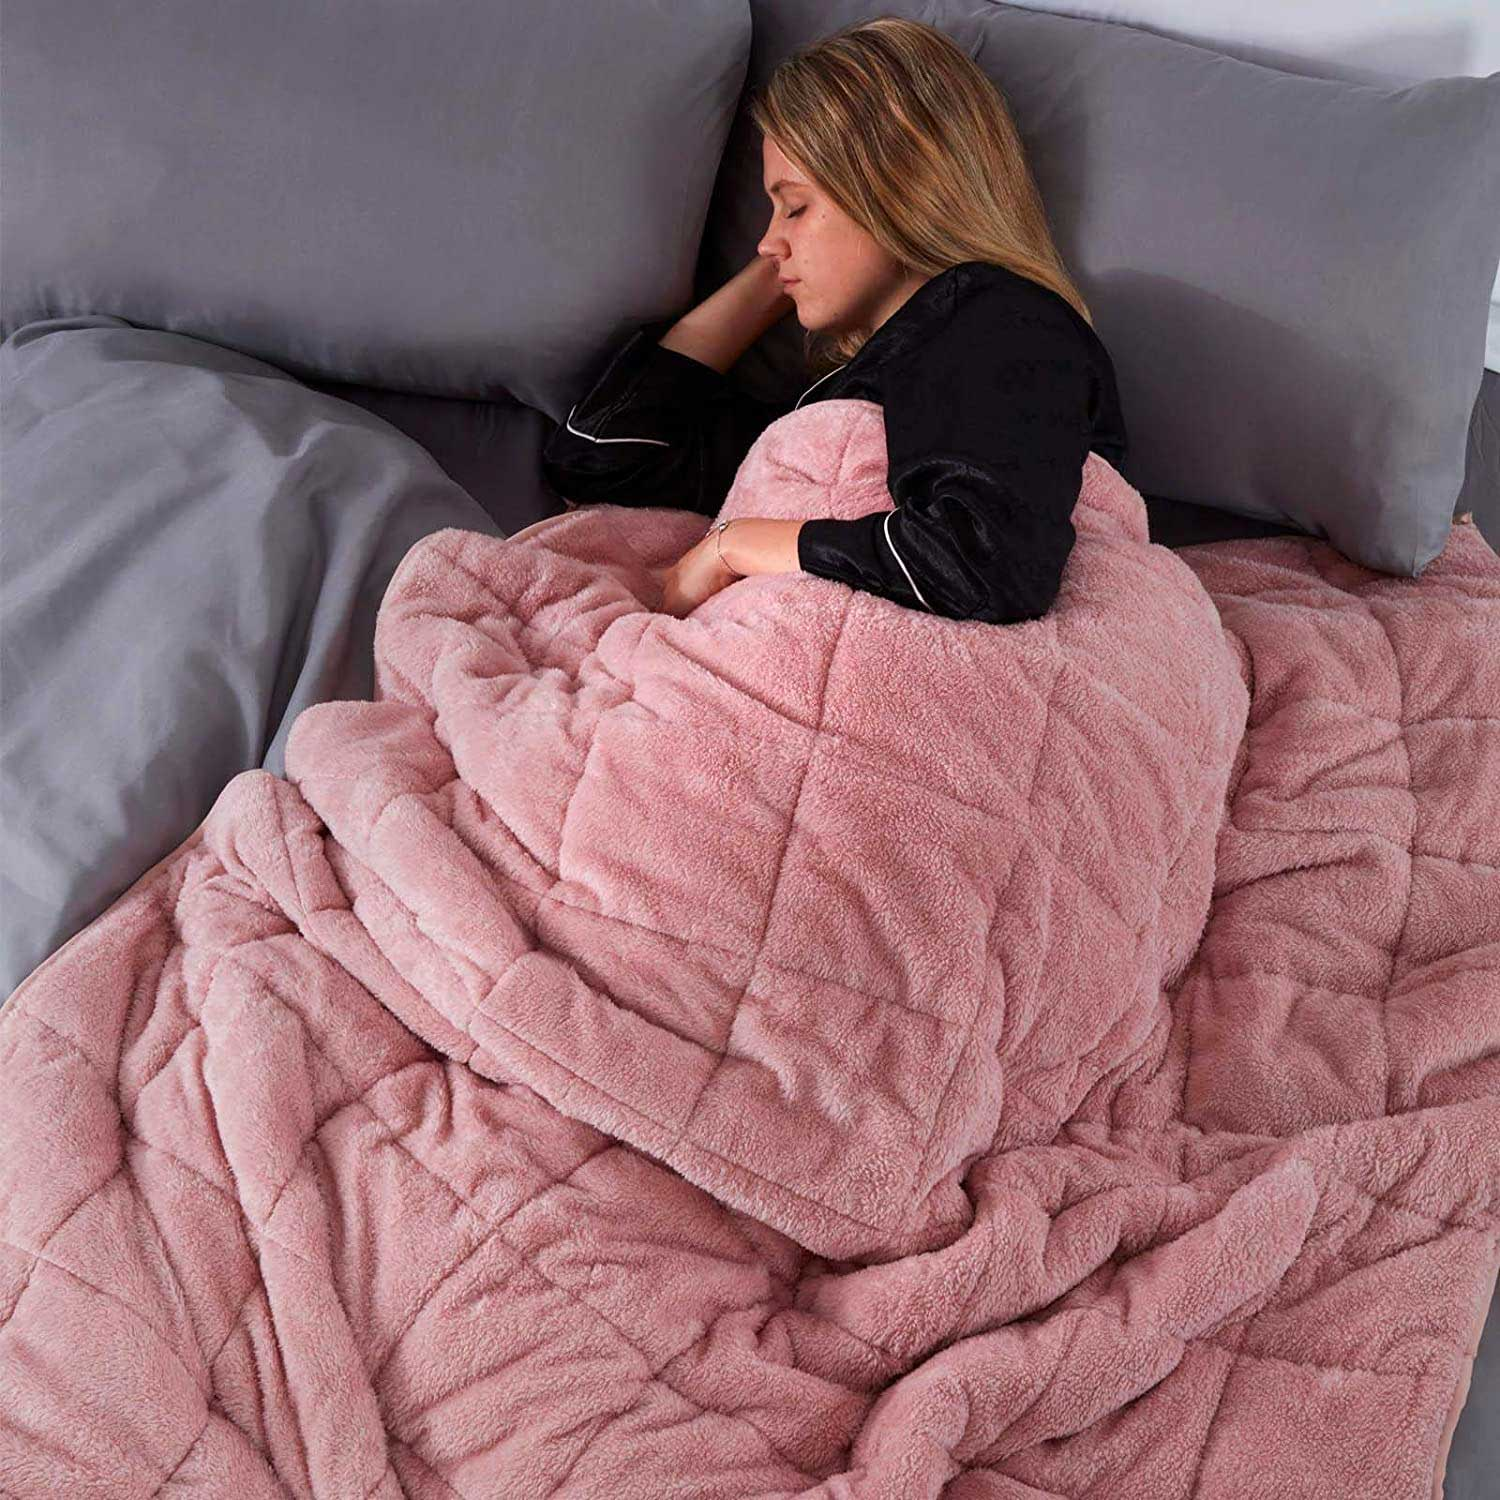 Brentfords Super Soft Teddy Fleece Weighted Blanket with Micro Glass Beads for Adult Insomnia Anxiety Stress Relief, Blush Pink